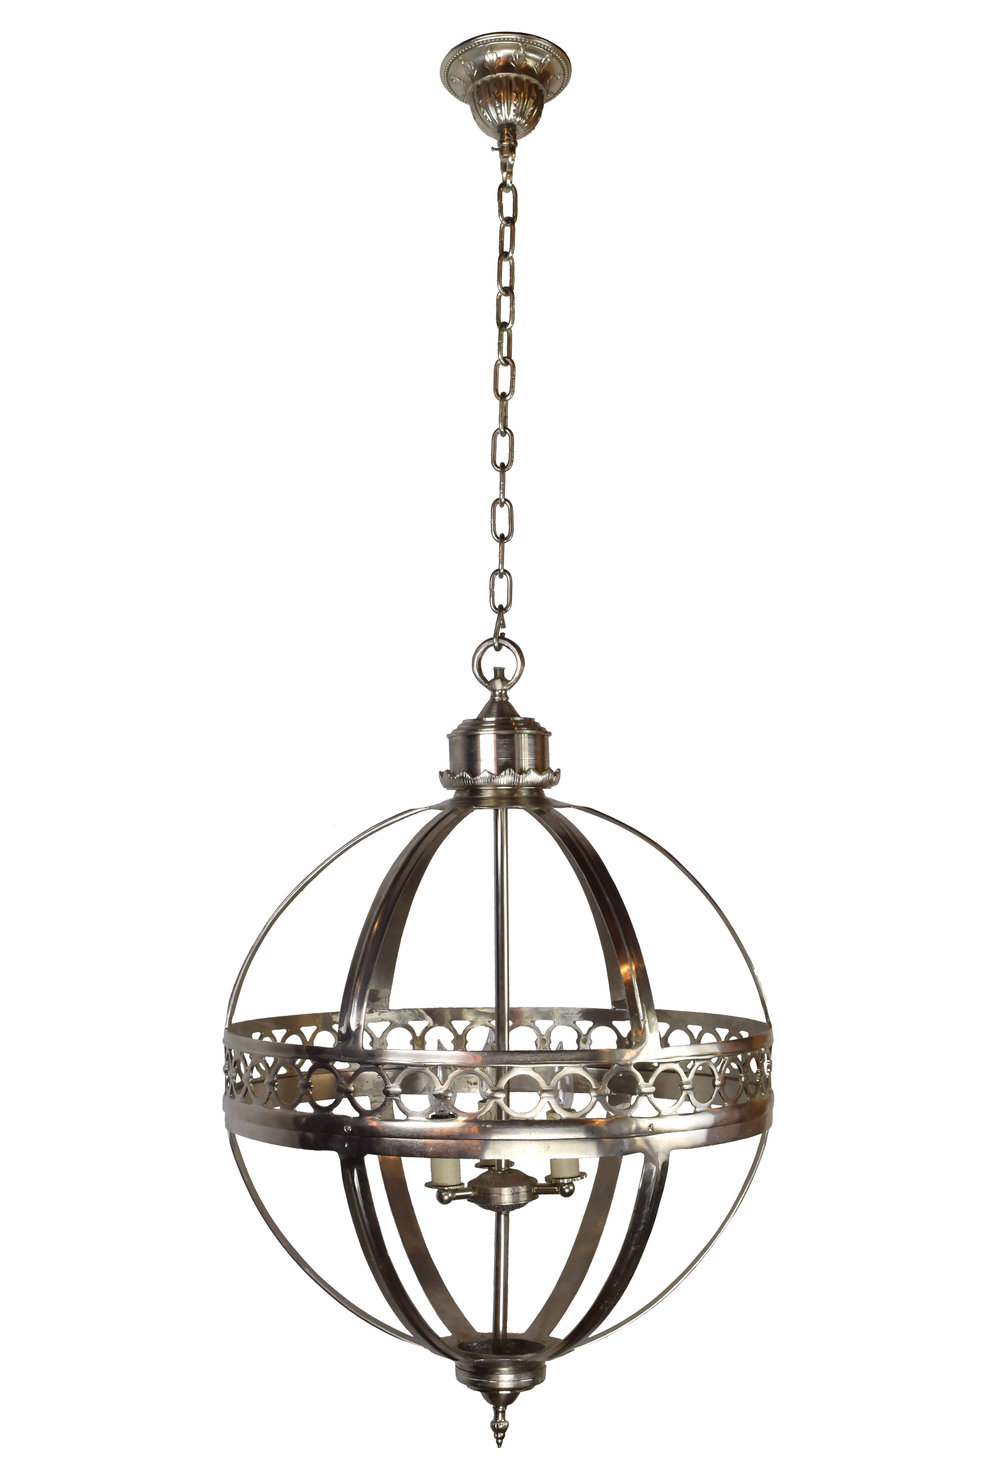 47167-spherical-nickel-large-chandelier-straight-on-view.jpg